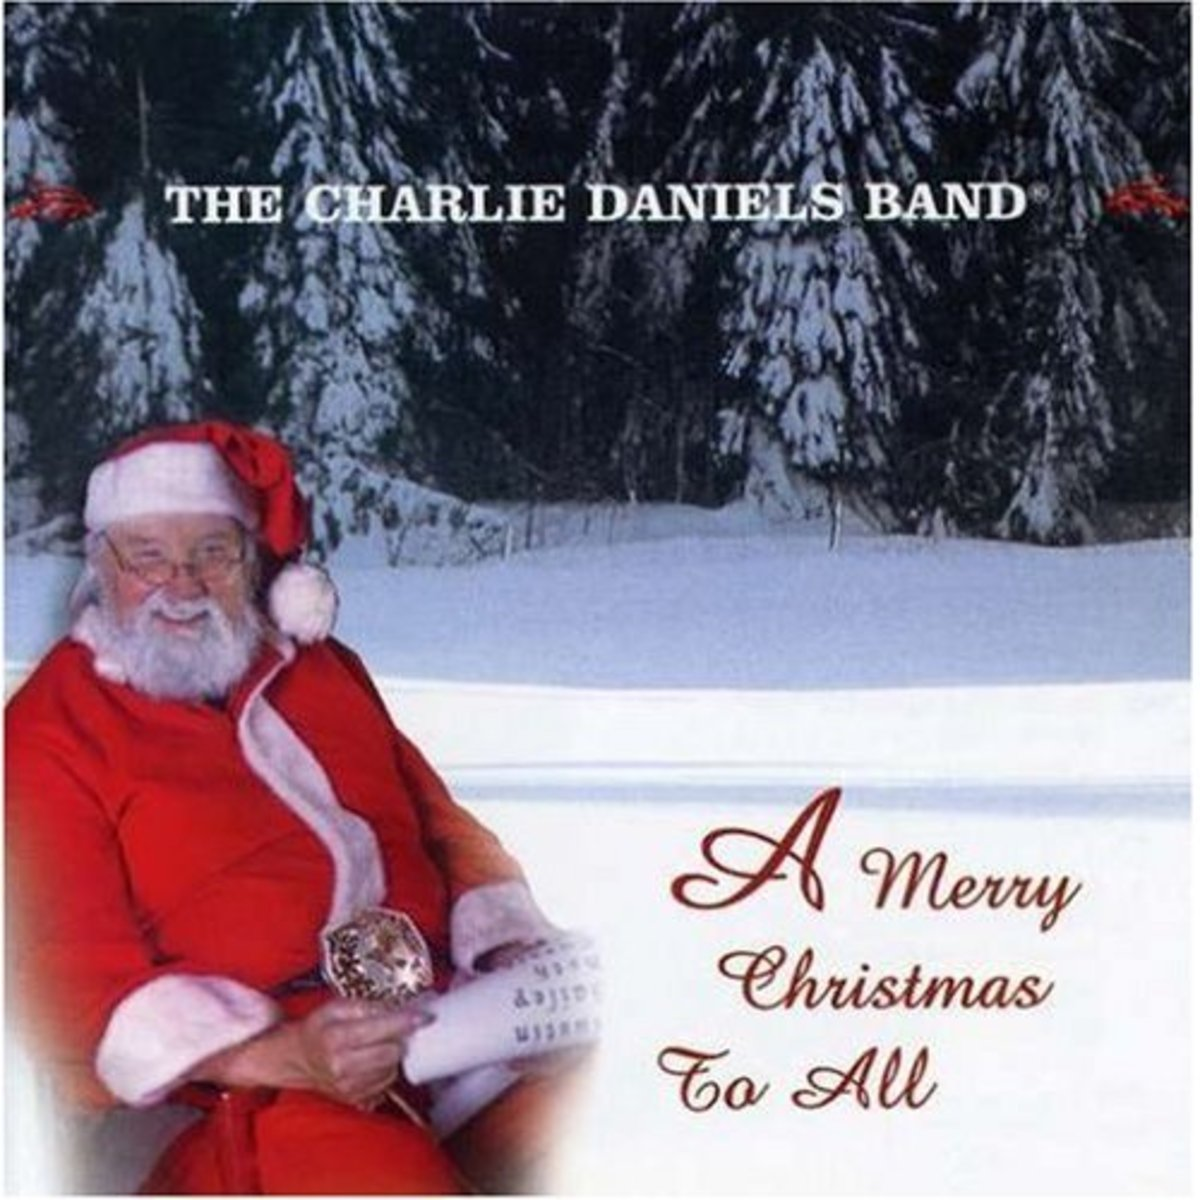 """Charlie Daniel's Band ~ """"A Merry Christmas To All"""" Not only a great album, but Charlie kind of LOOKS like SANTA!"""